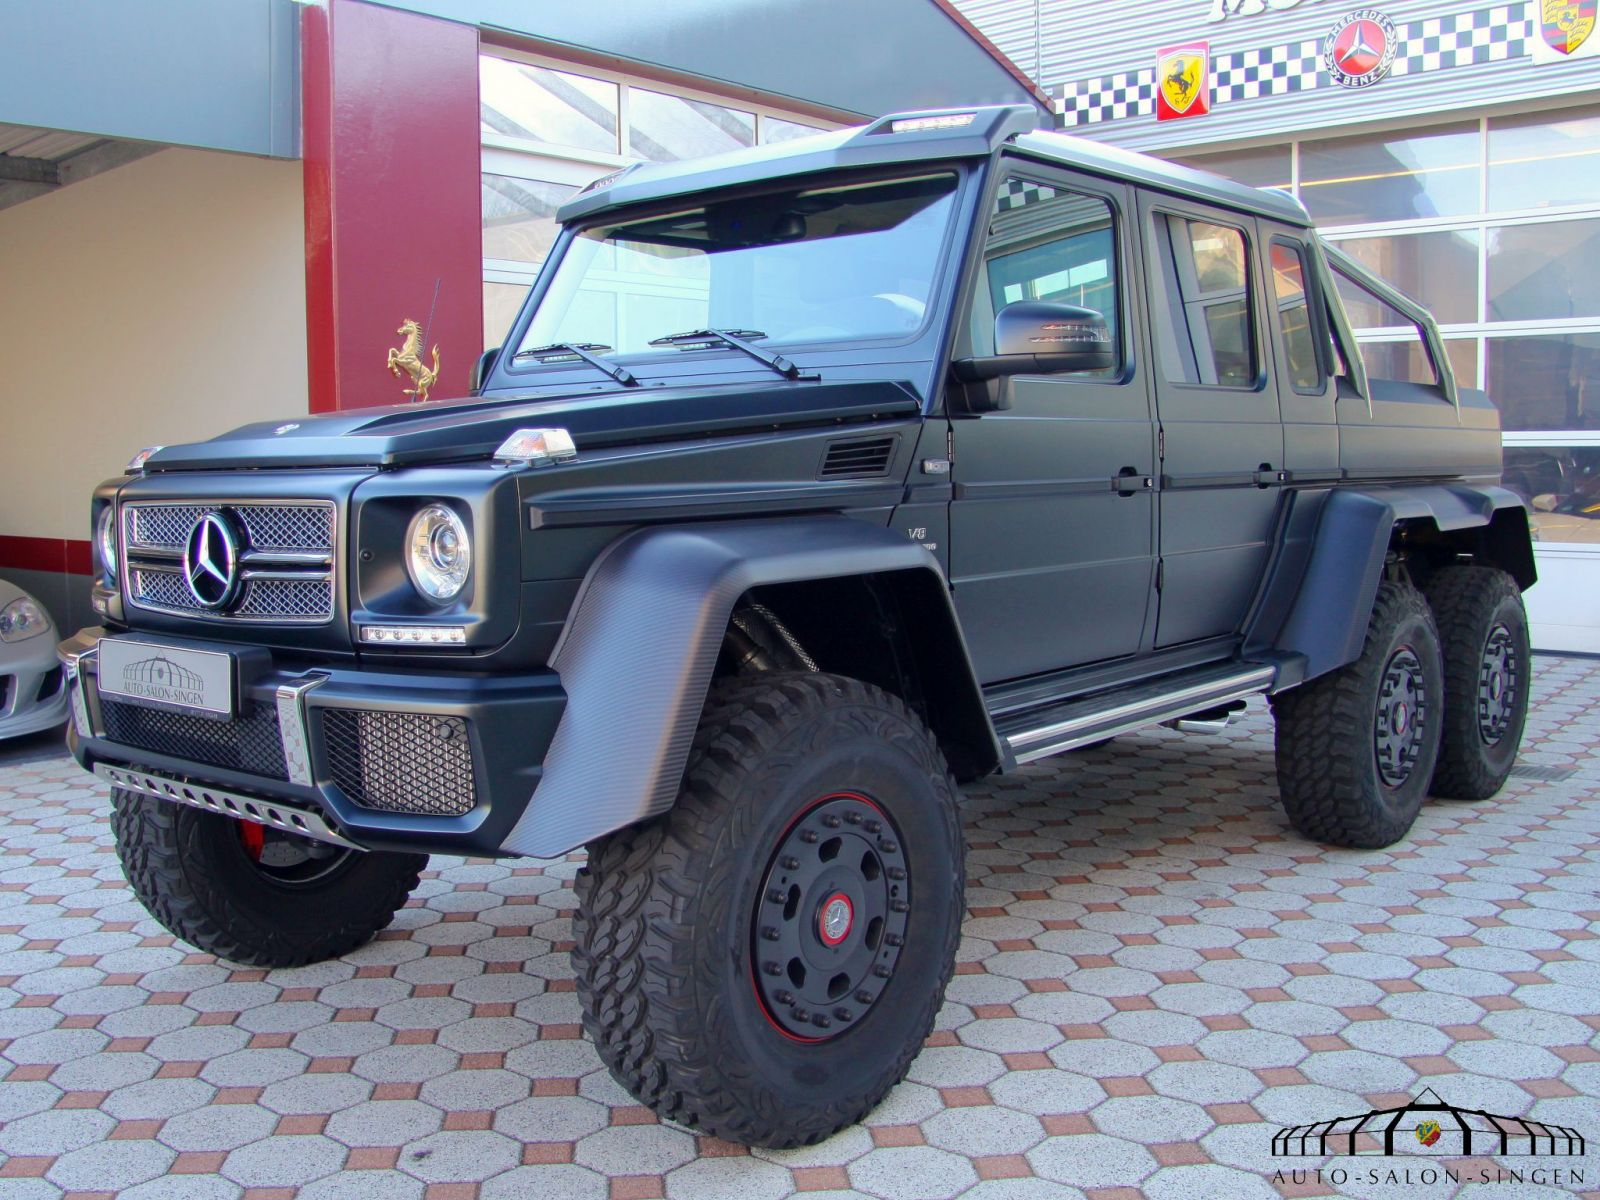 100 mercedes benz g class 6x6 interior mercedes benz amg g63 6x6 gronos off road vehicle - Classe g 6x6 ...